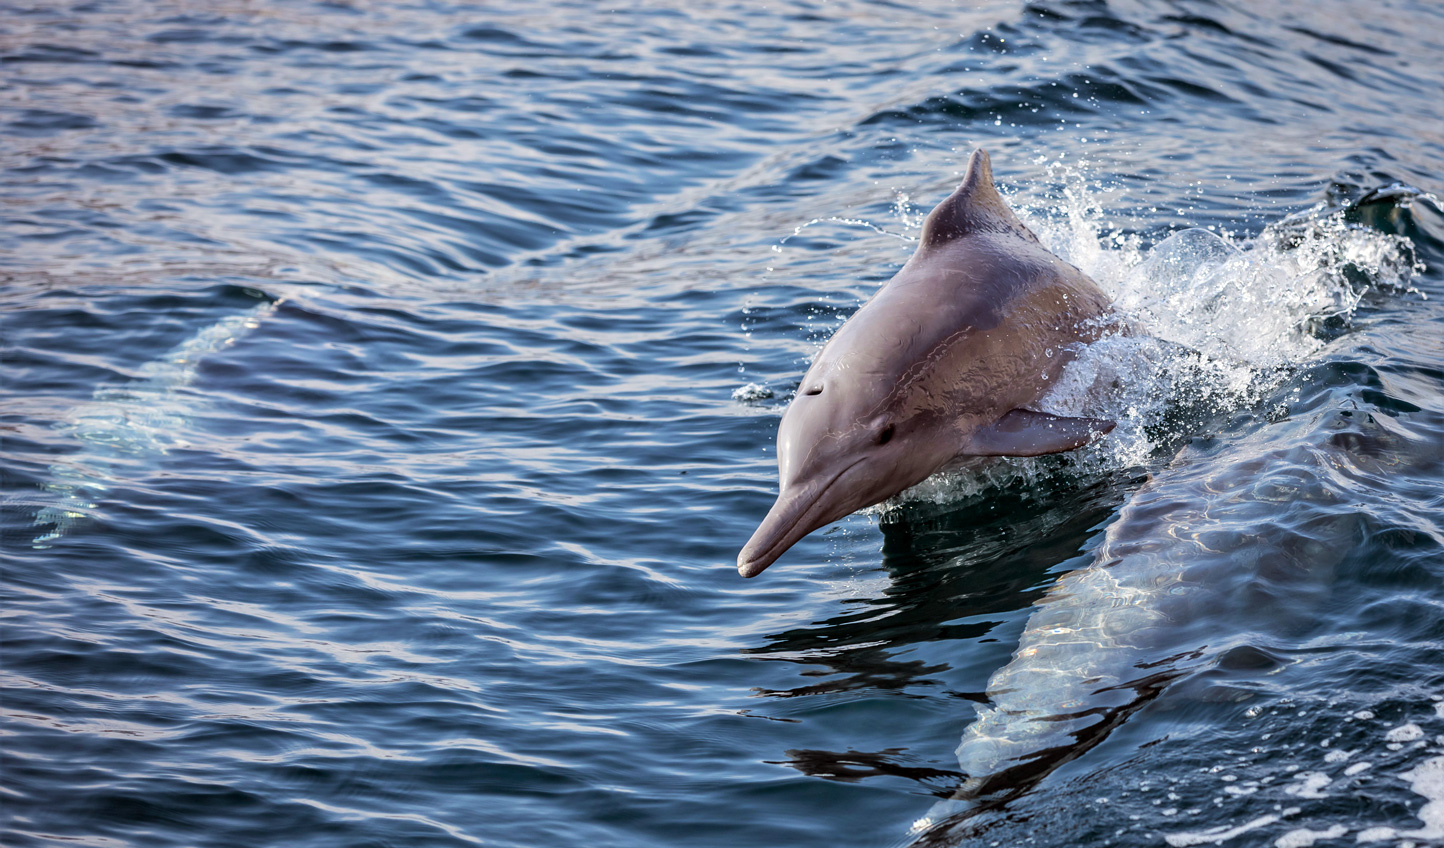 Head out into the Gulf of Oman in search of dolphins